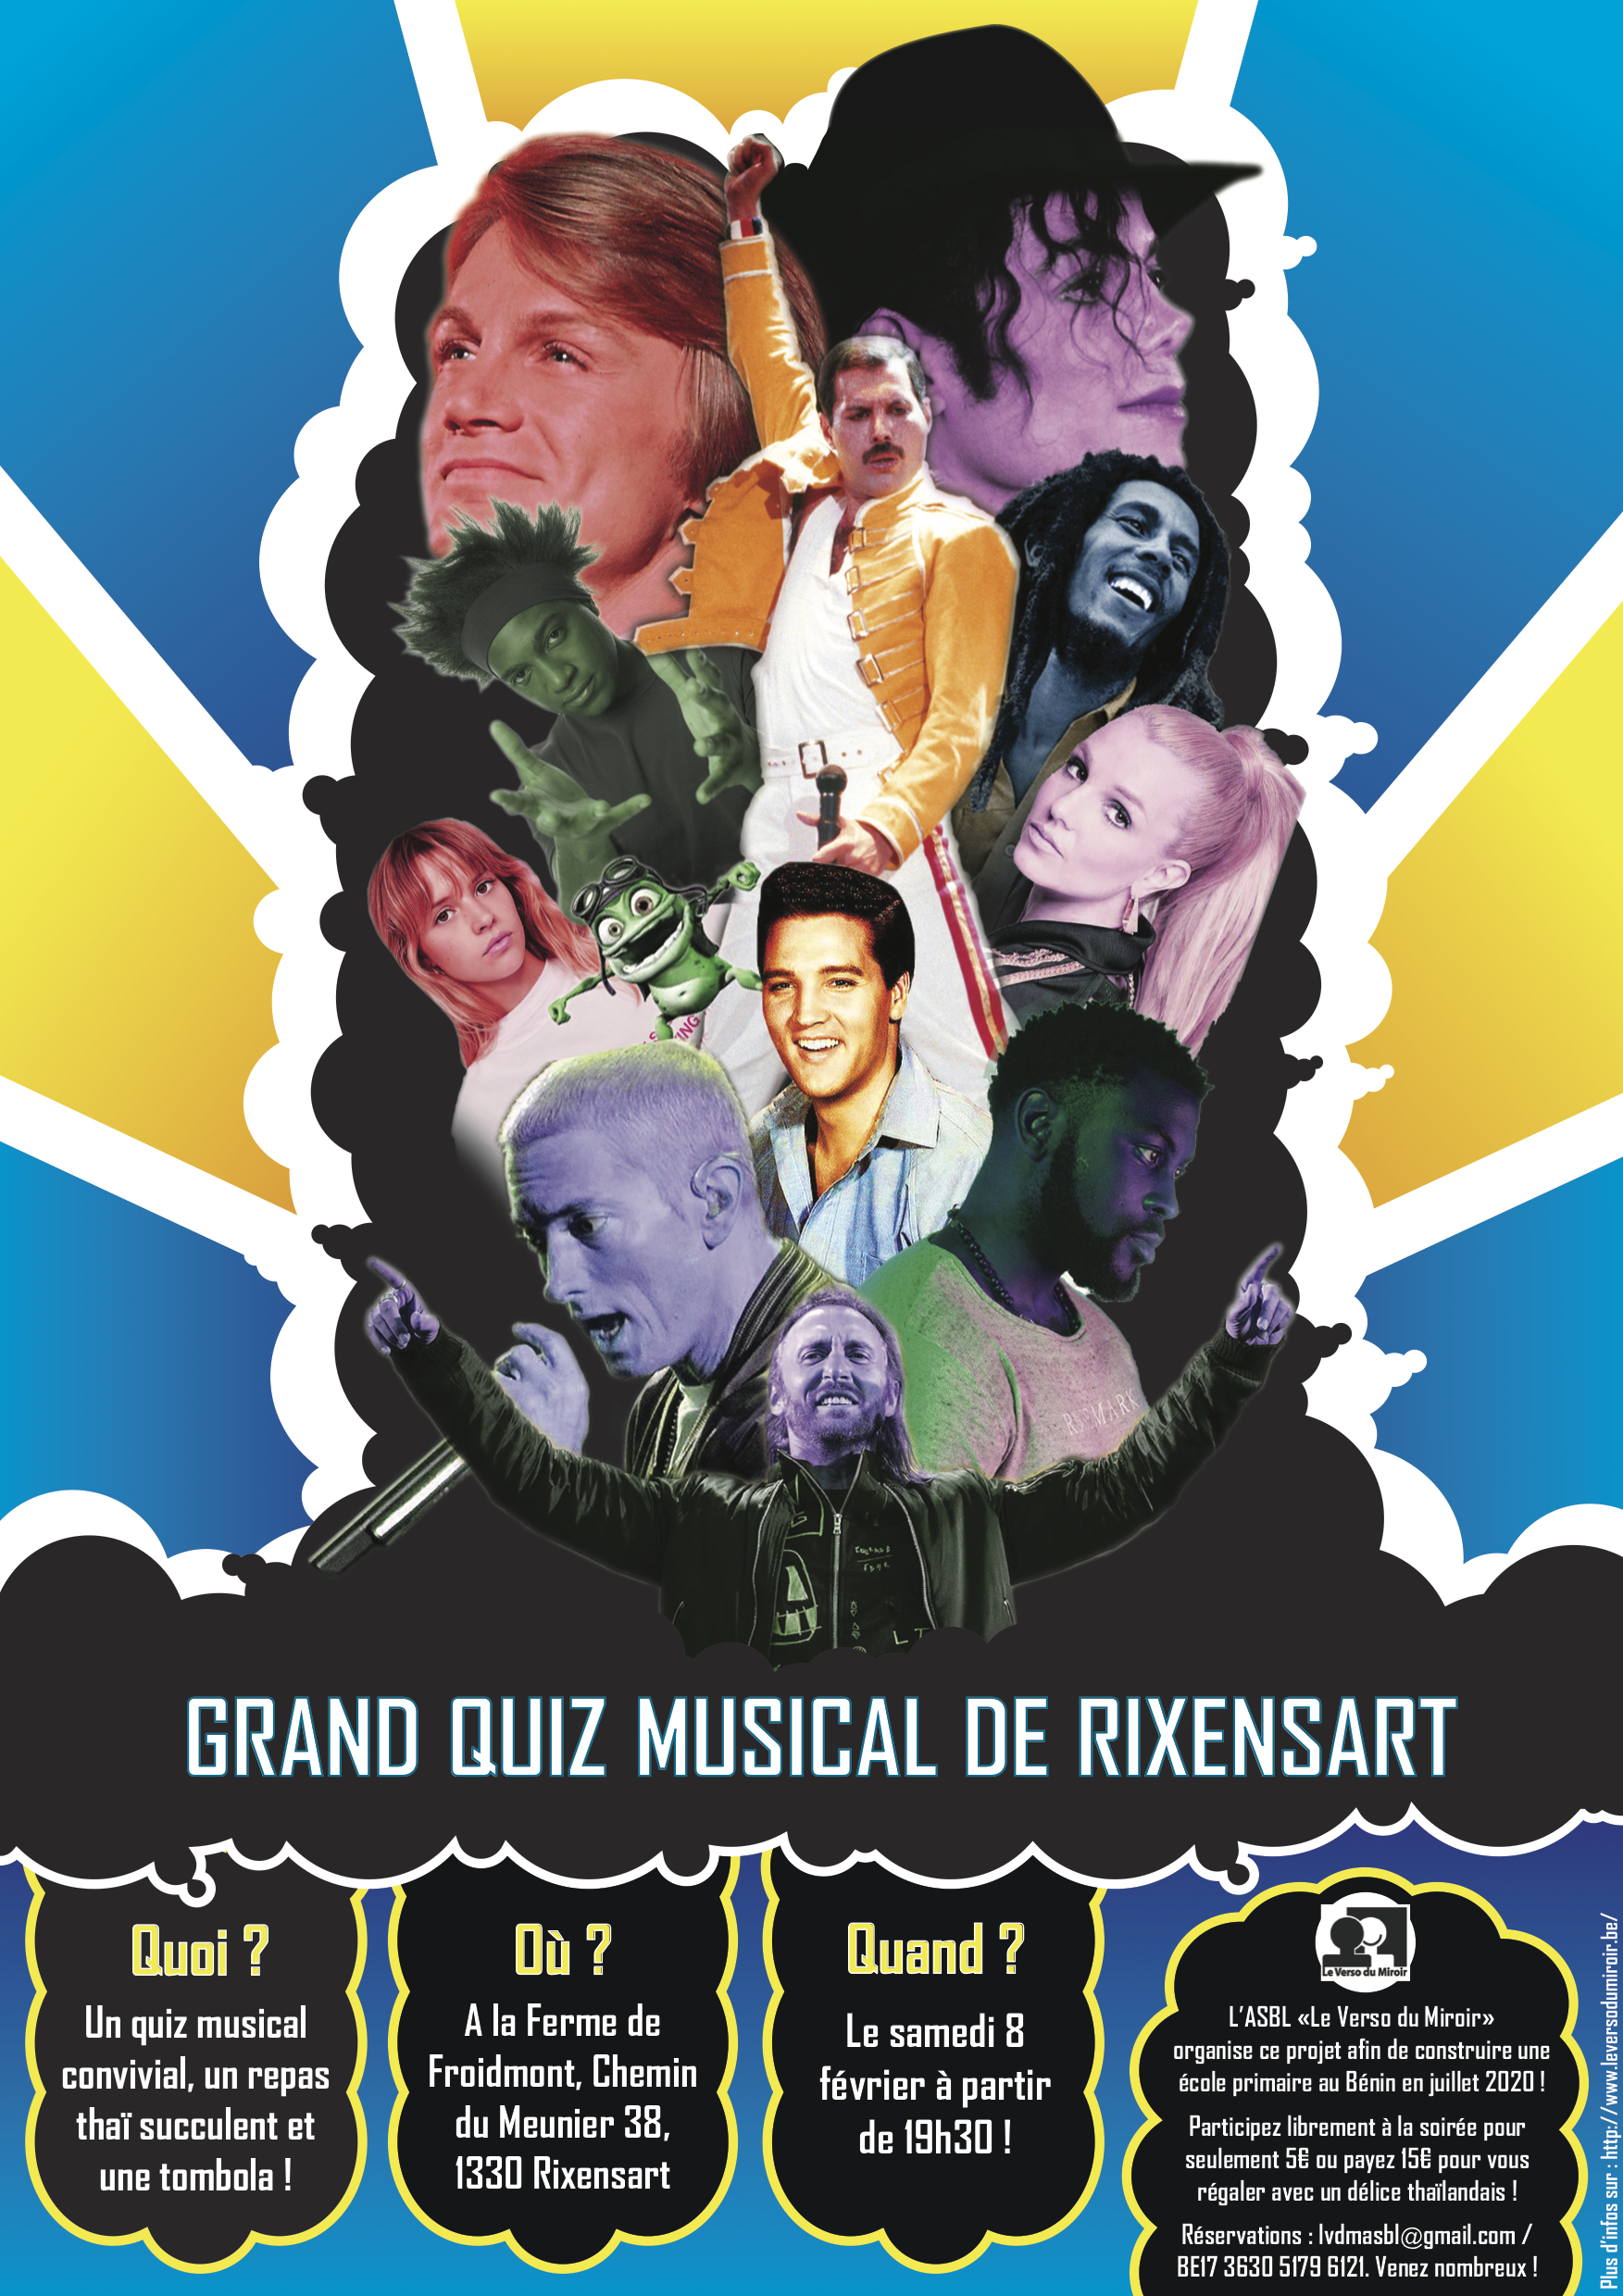 Grand quizz musical